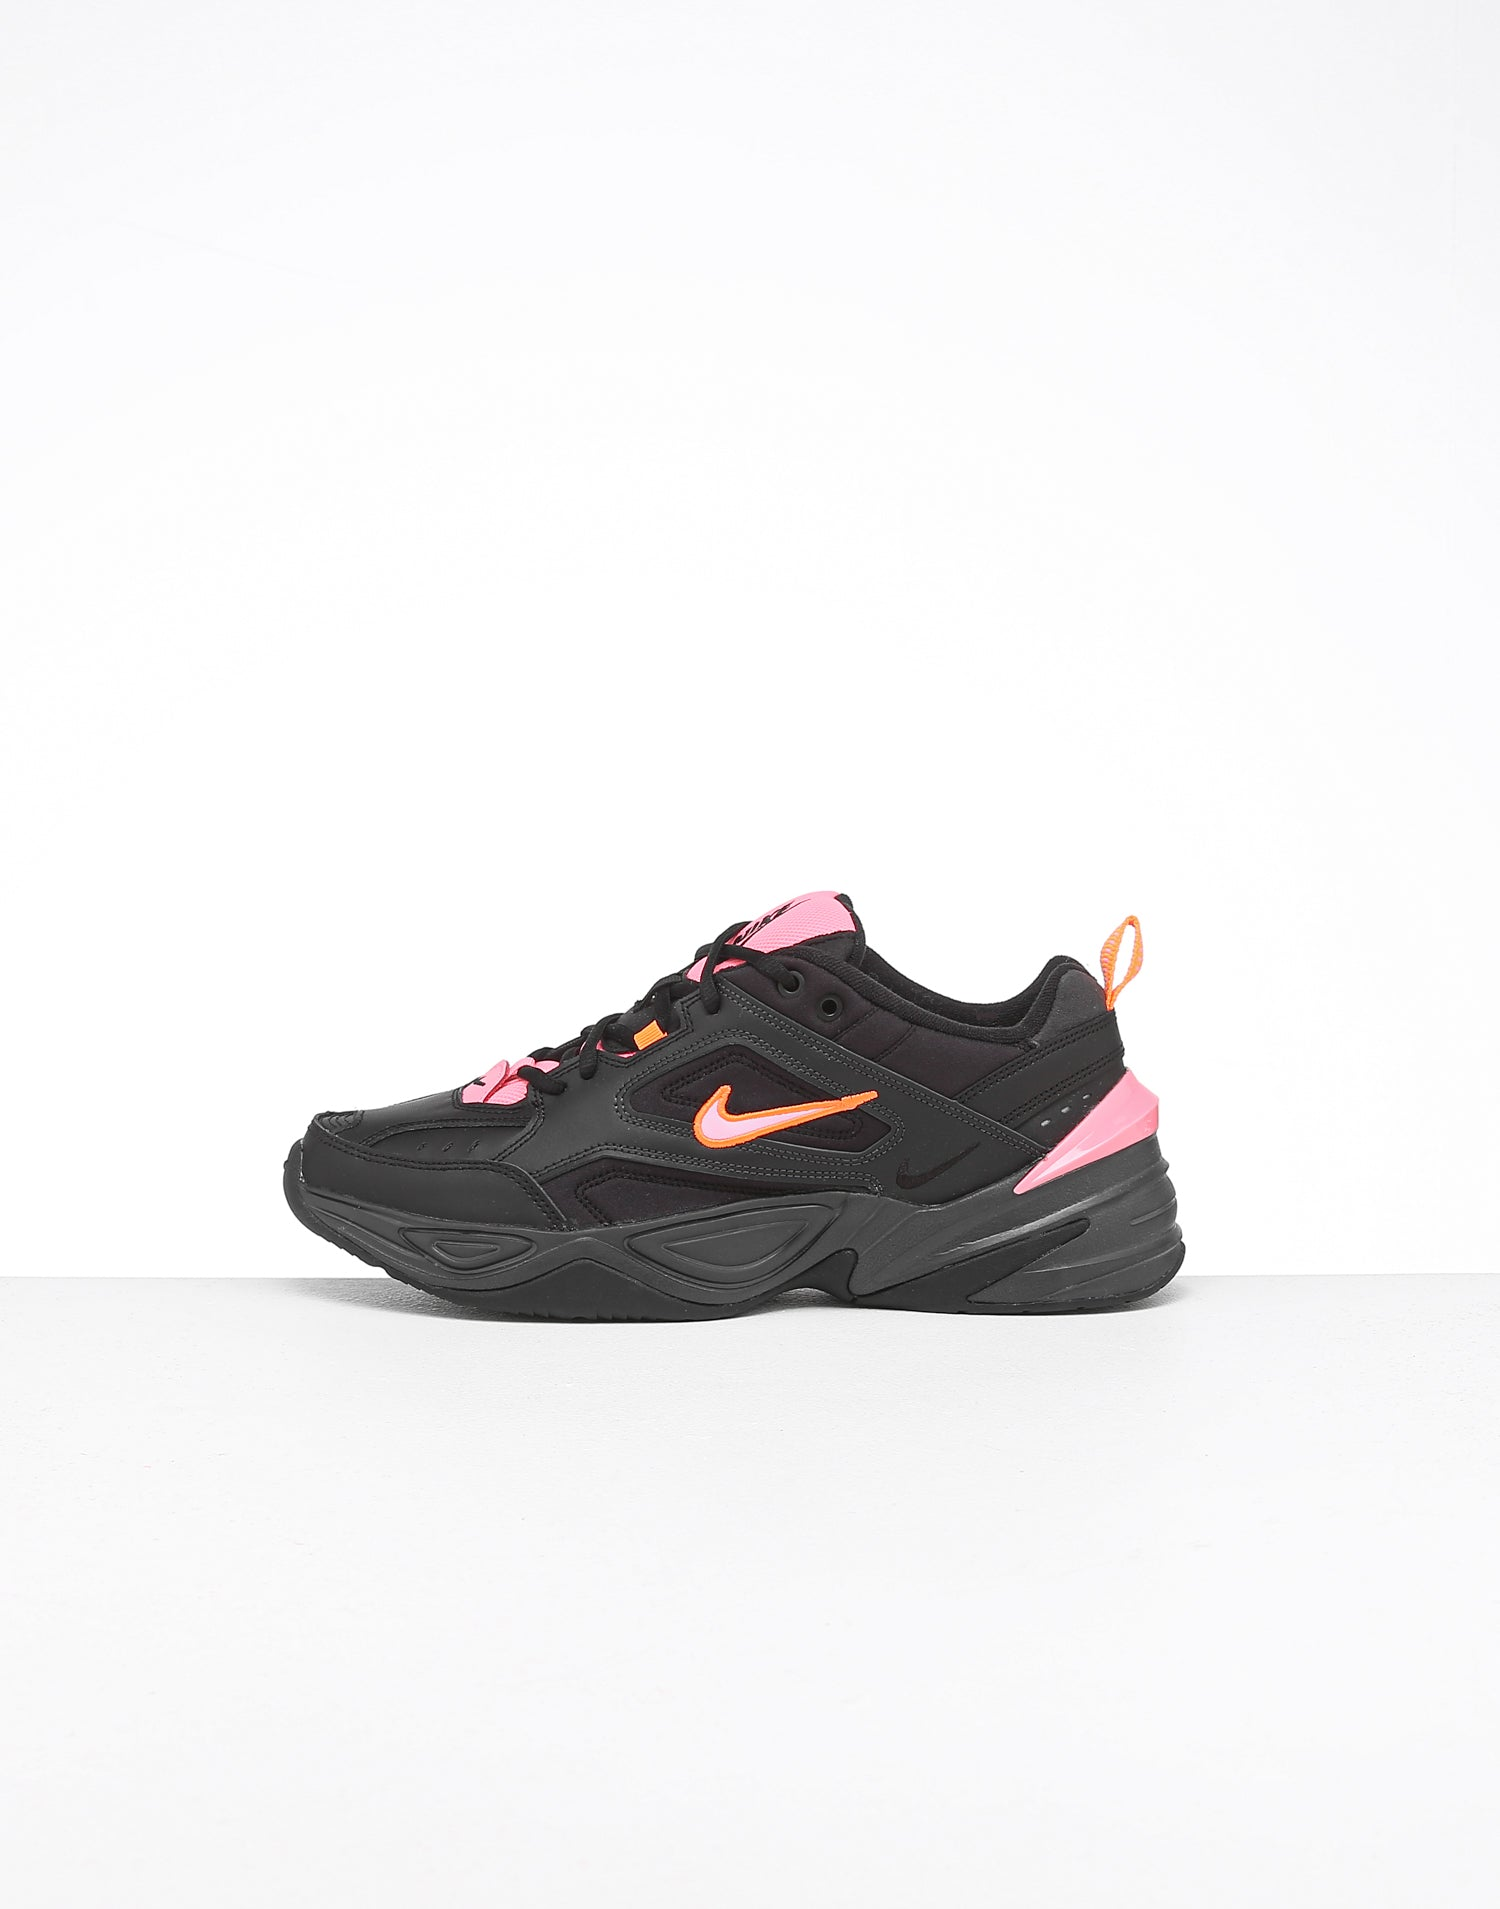 Nike M2k Tekno Shoe Cream from Nike on 21 Buttons